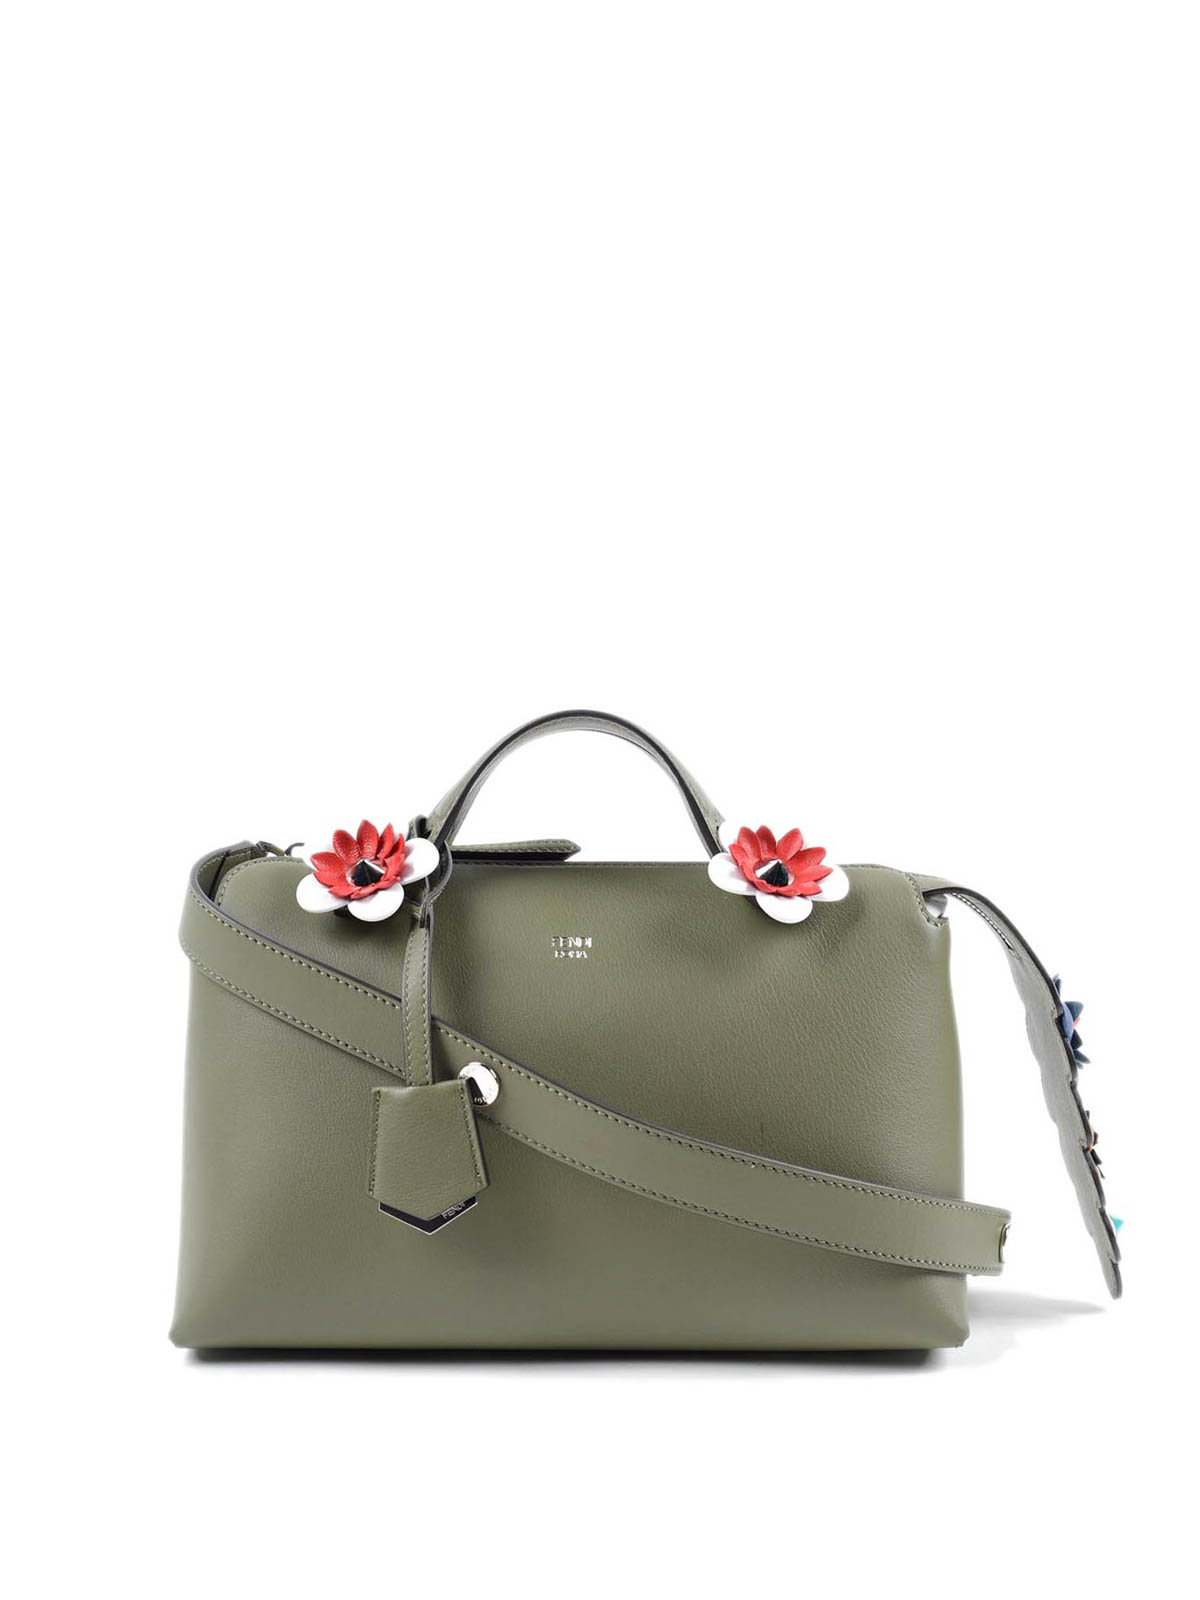 8e309c24e4 Fendi - By The Way small bag with flowers - bowling bags - 8BL124 ...